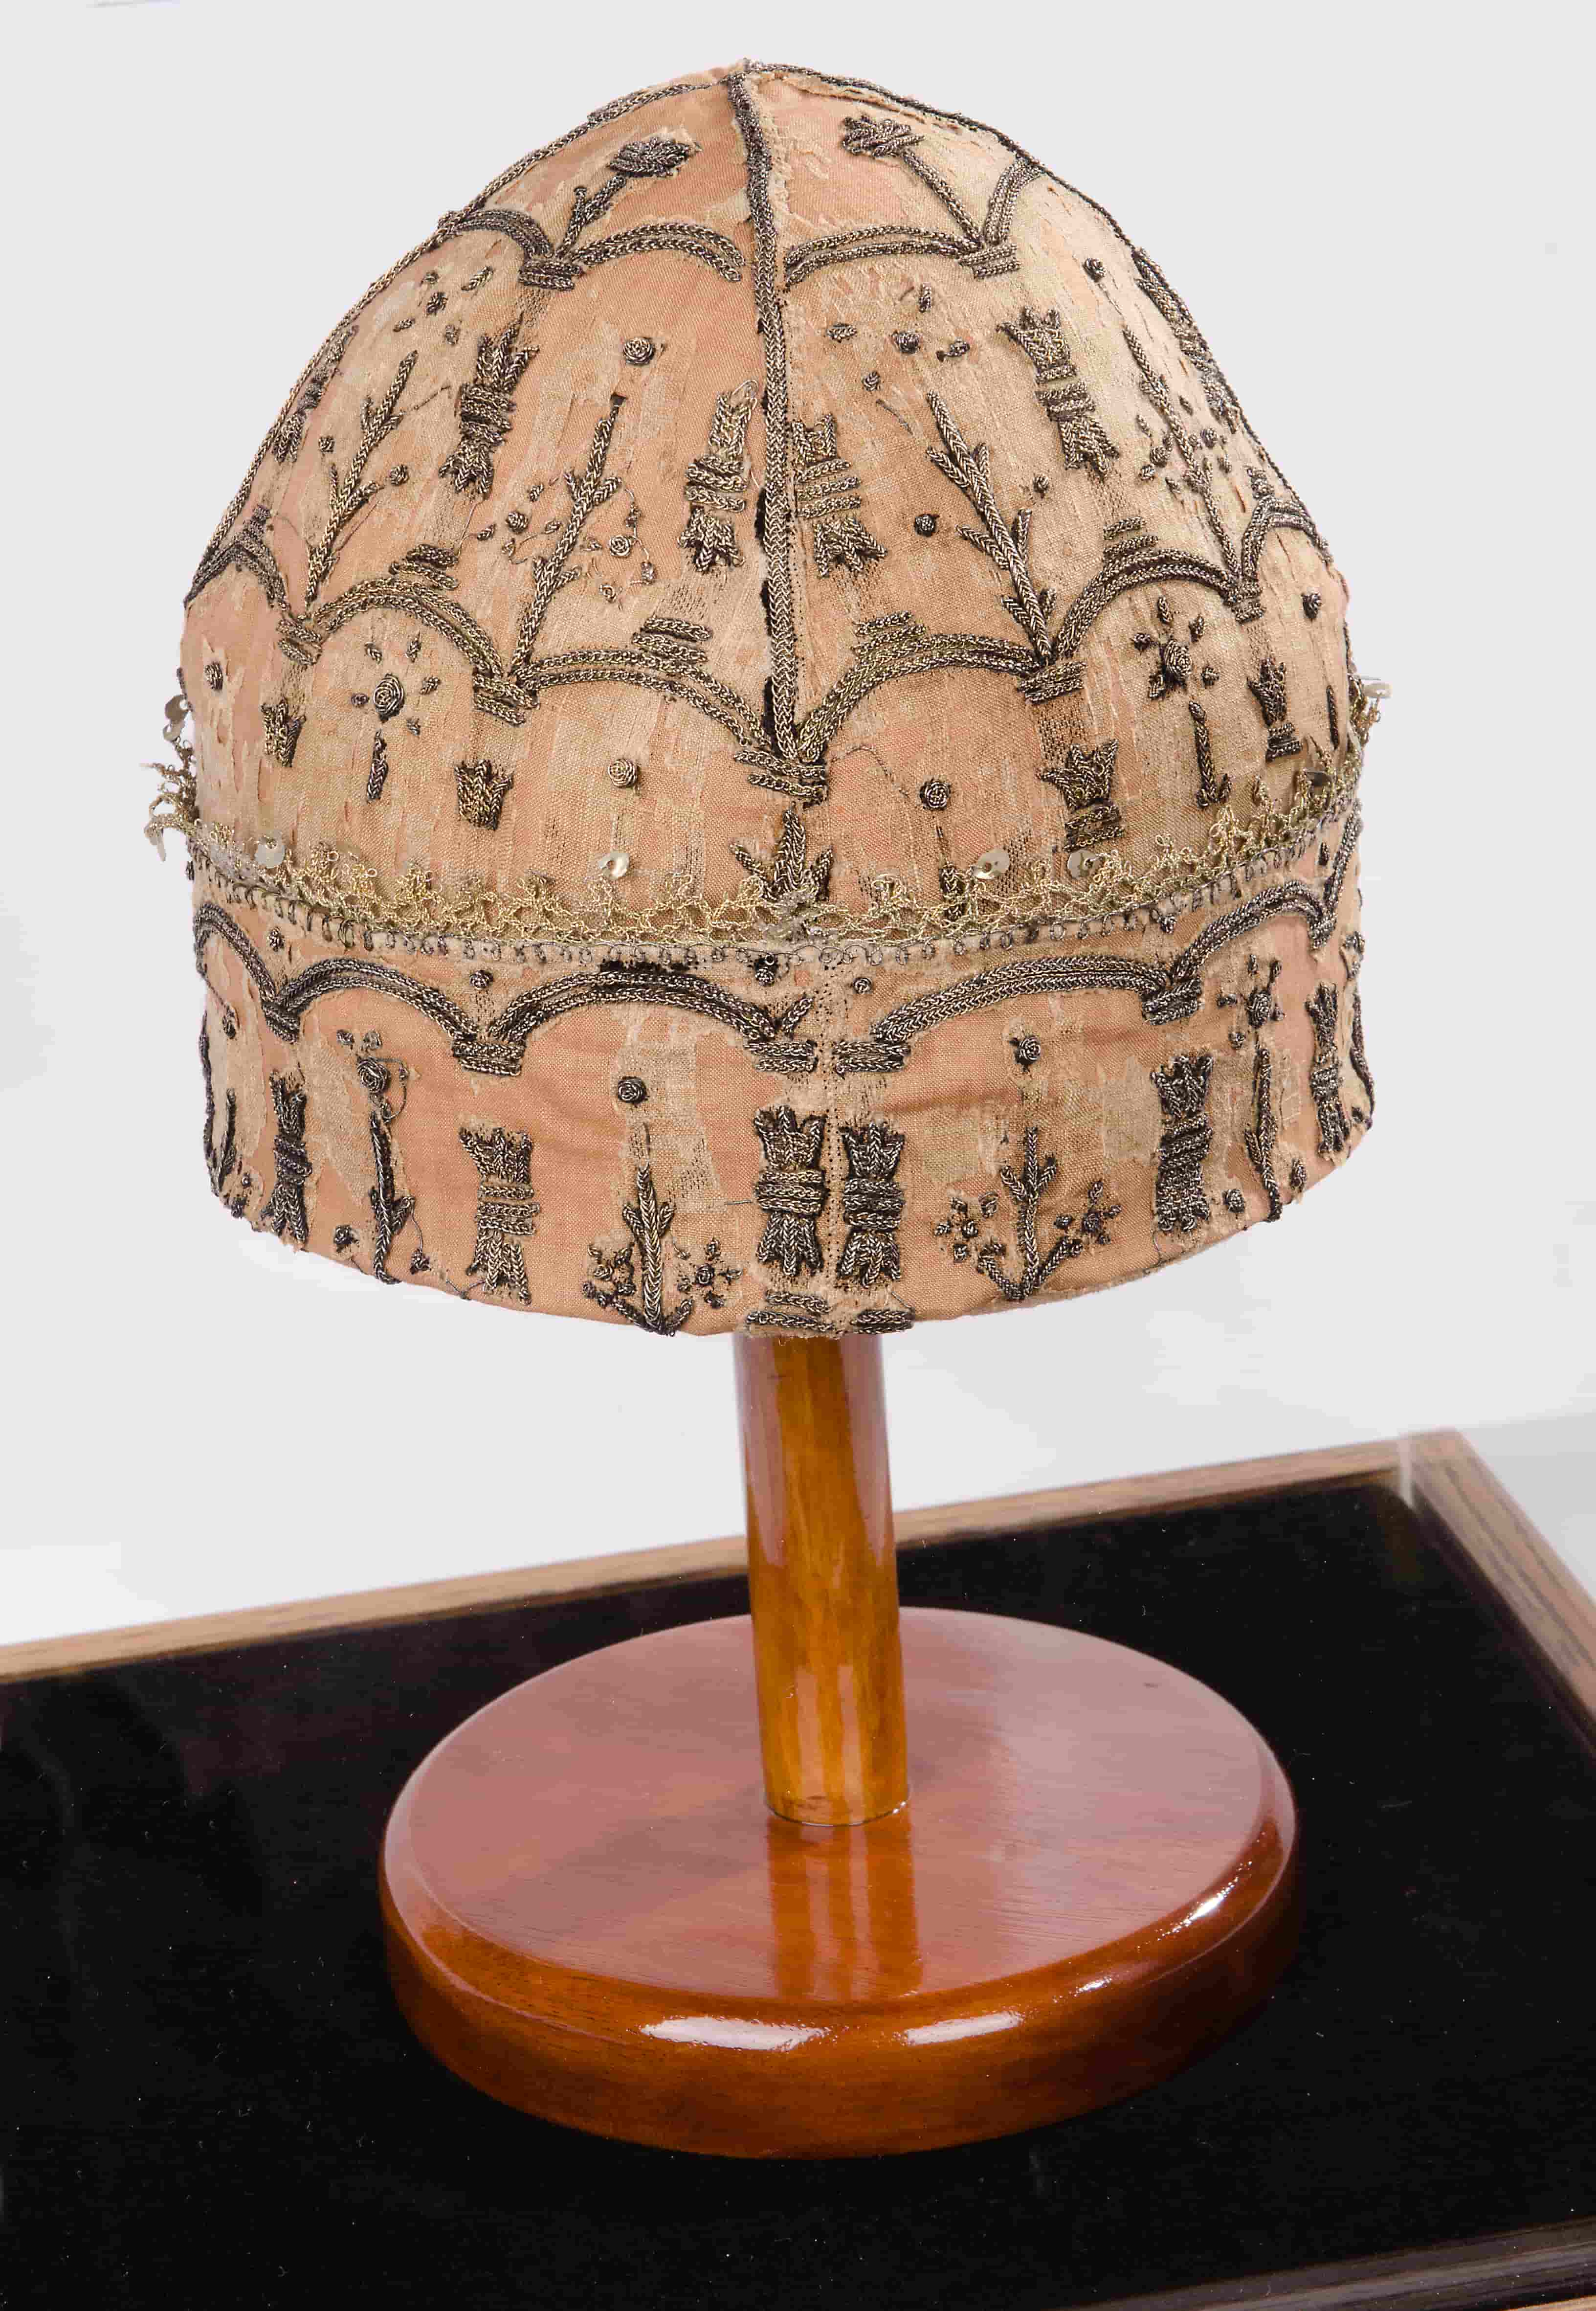 Photo of round faded red hat with ornate embroidery on a polished wooden stand on a black fabric cloth with a white background.